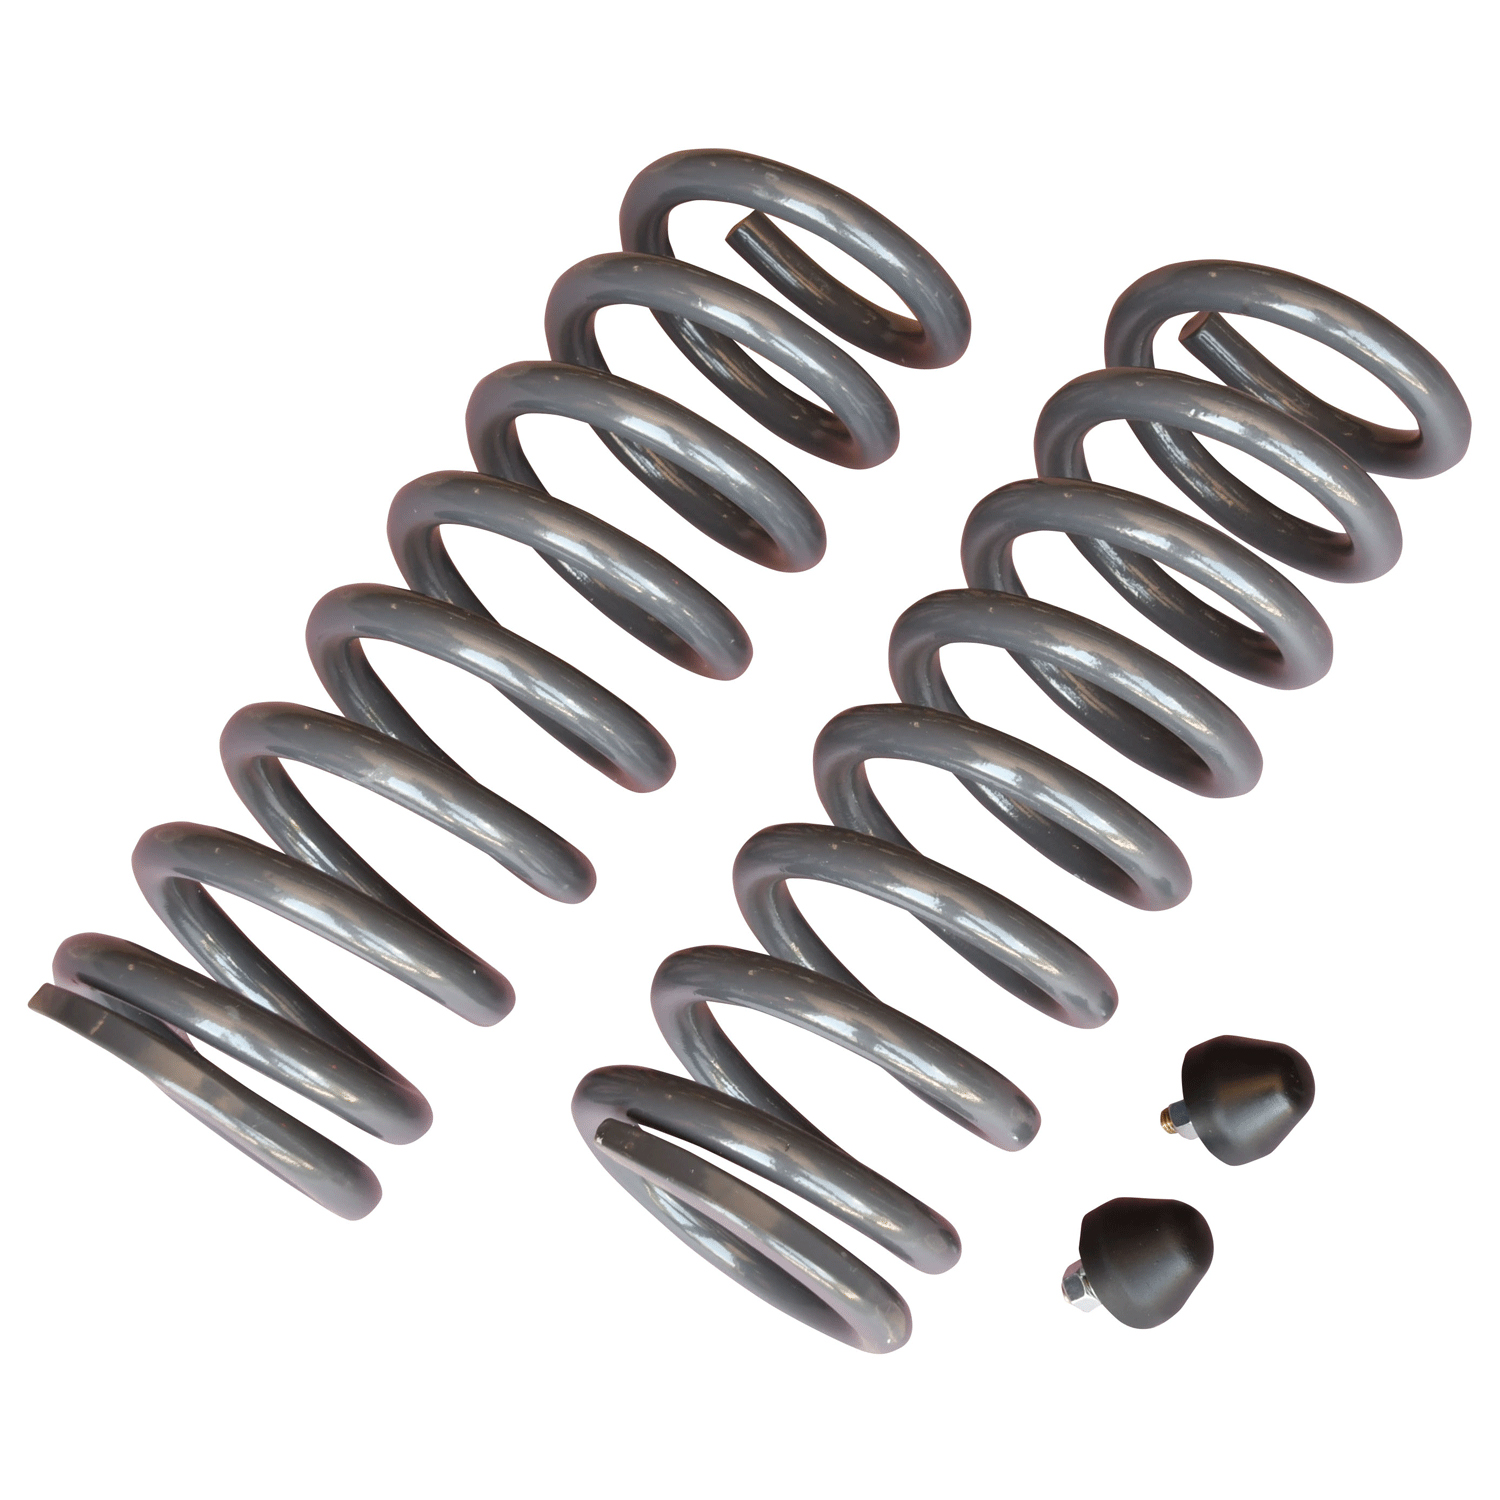 1967-1972 GM A-Body SB Front Coil Springs 2 in. Lowering Springs